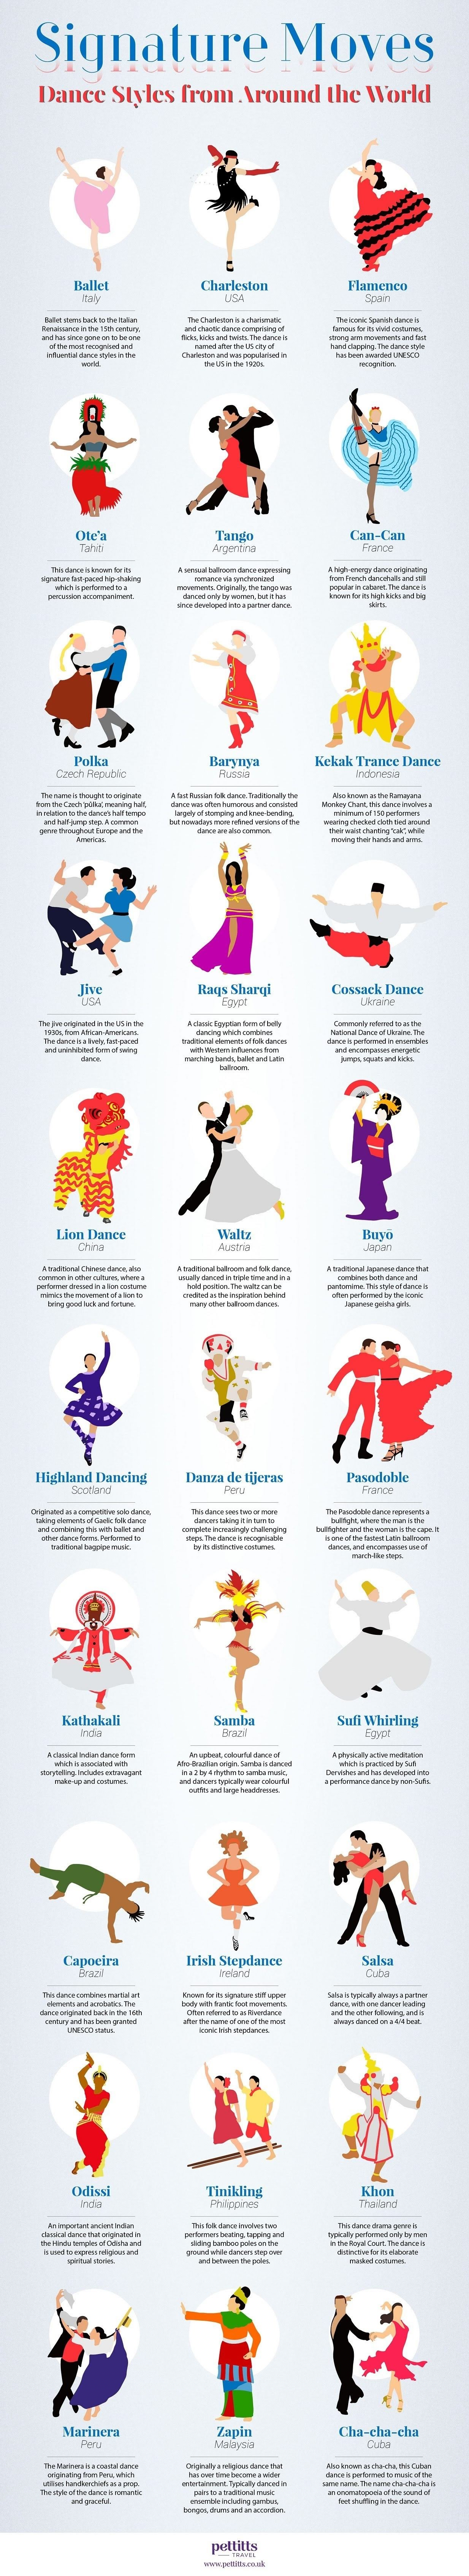 Signature Moves Dance Styles from Around the World #infographic